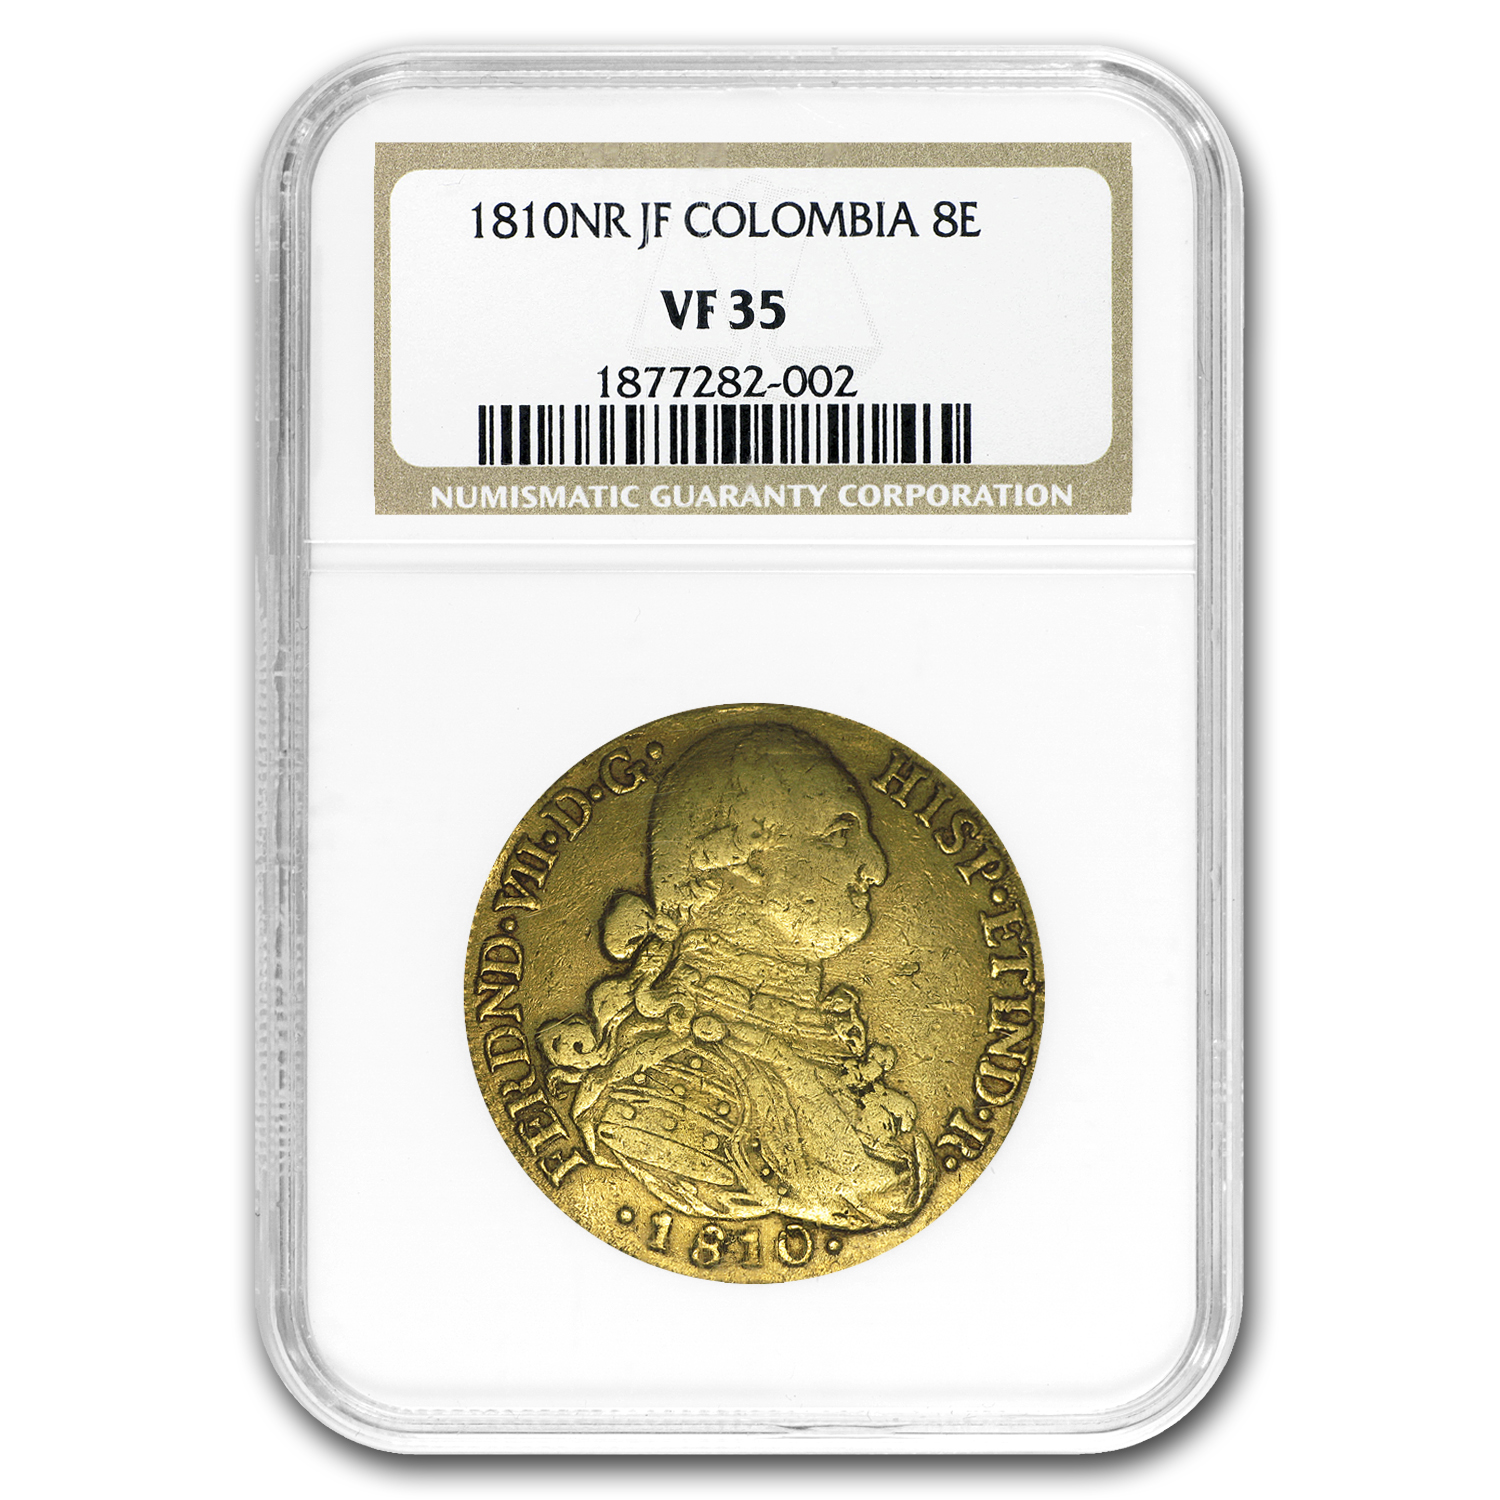 1810 NR-JF Colombia Gold 8 Escudo Ferdinand VII VF-35 NGC